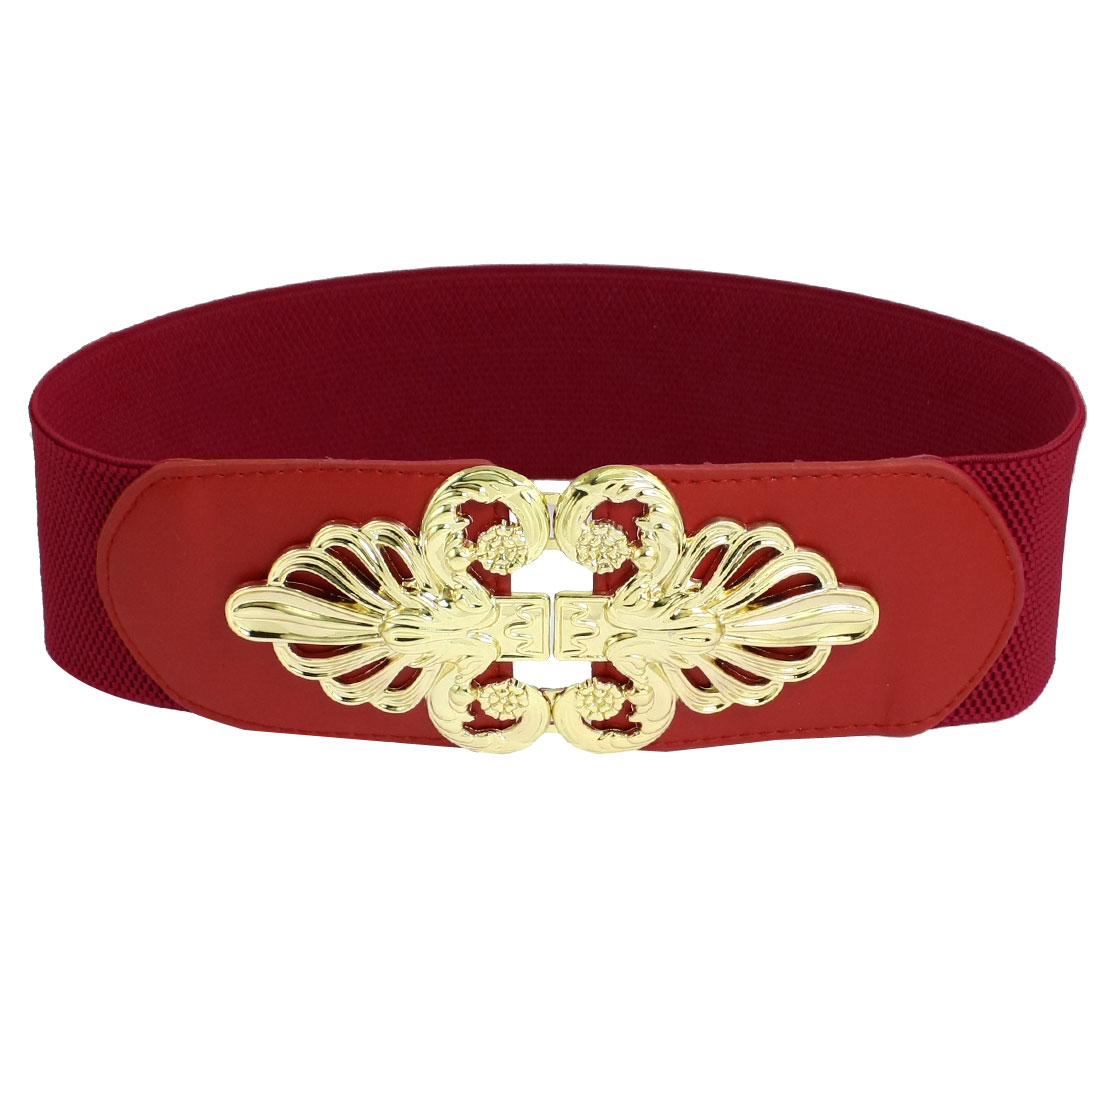 Red 6cm Width Interlocking Buckle Elastic Cinch Belts for Women